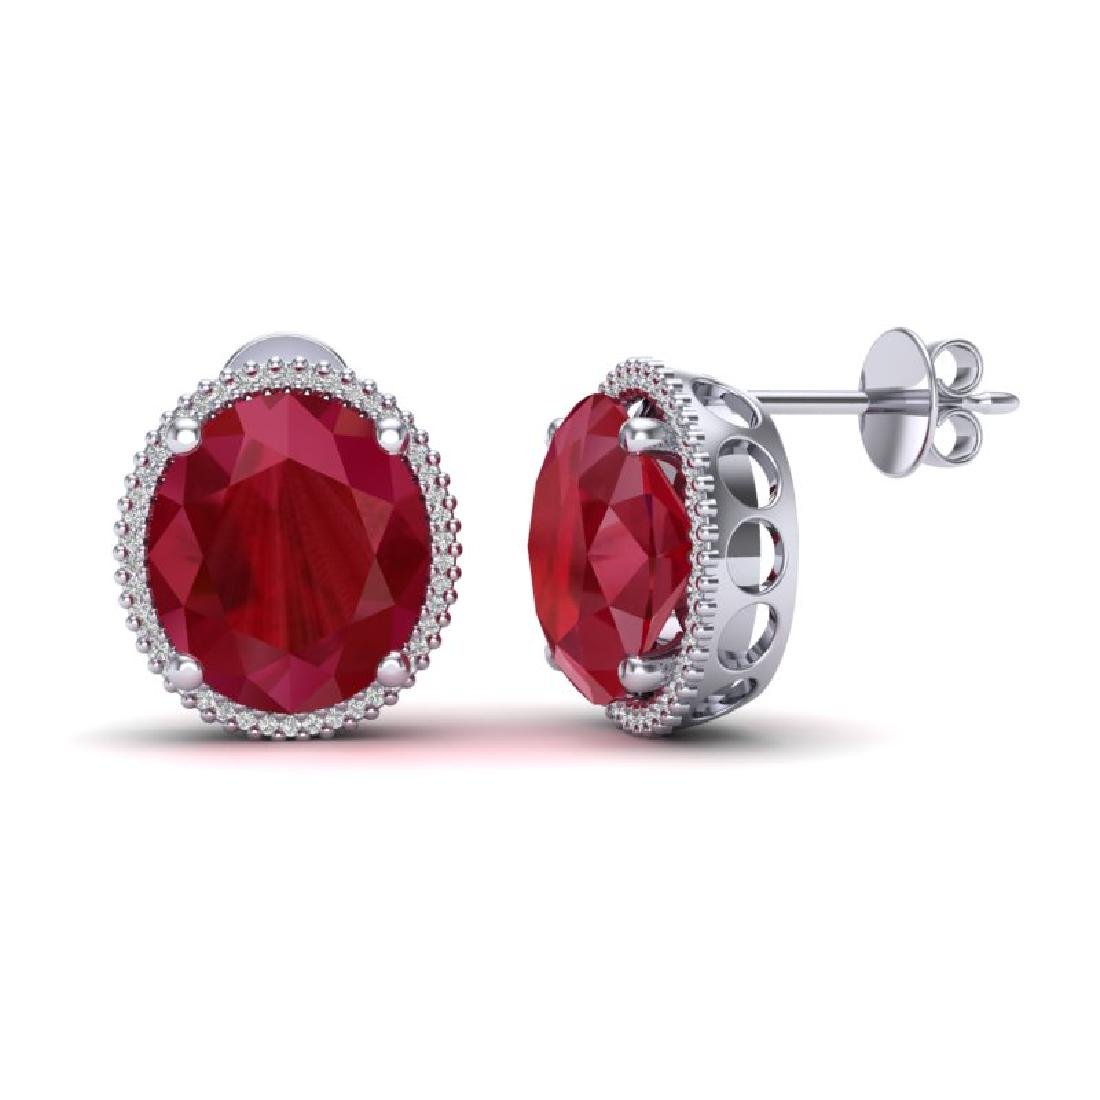 25 CTW Ruby & Micro Pave VS/SI Diamond Halo Earrings - 2